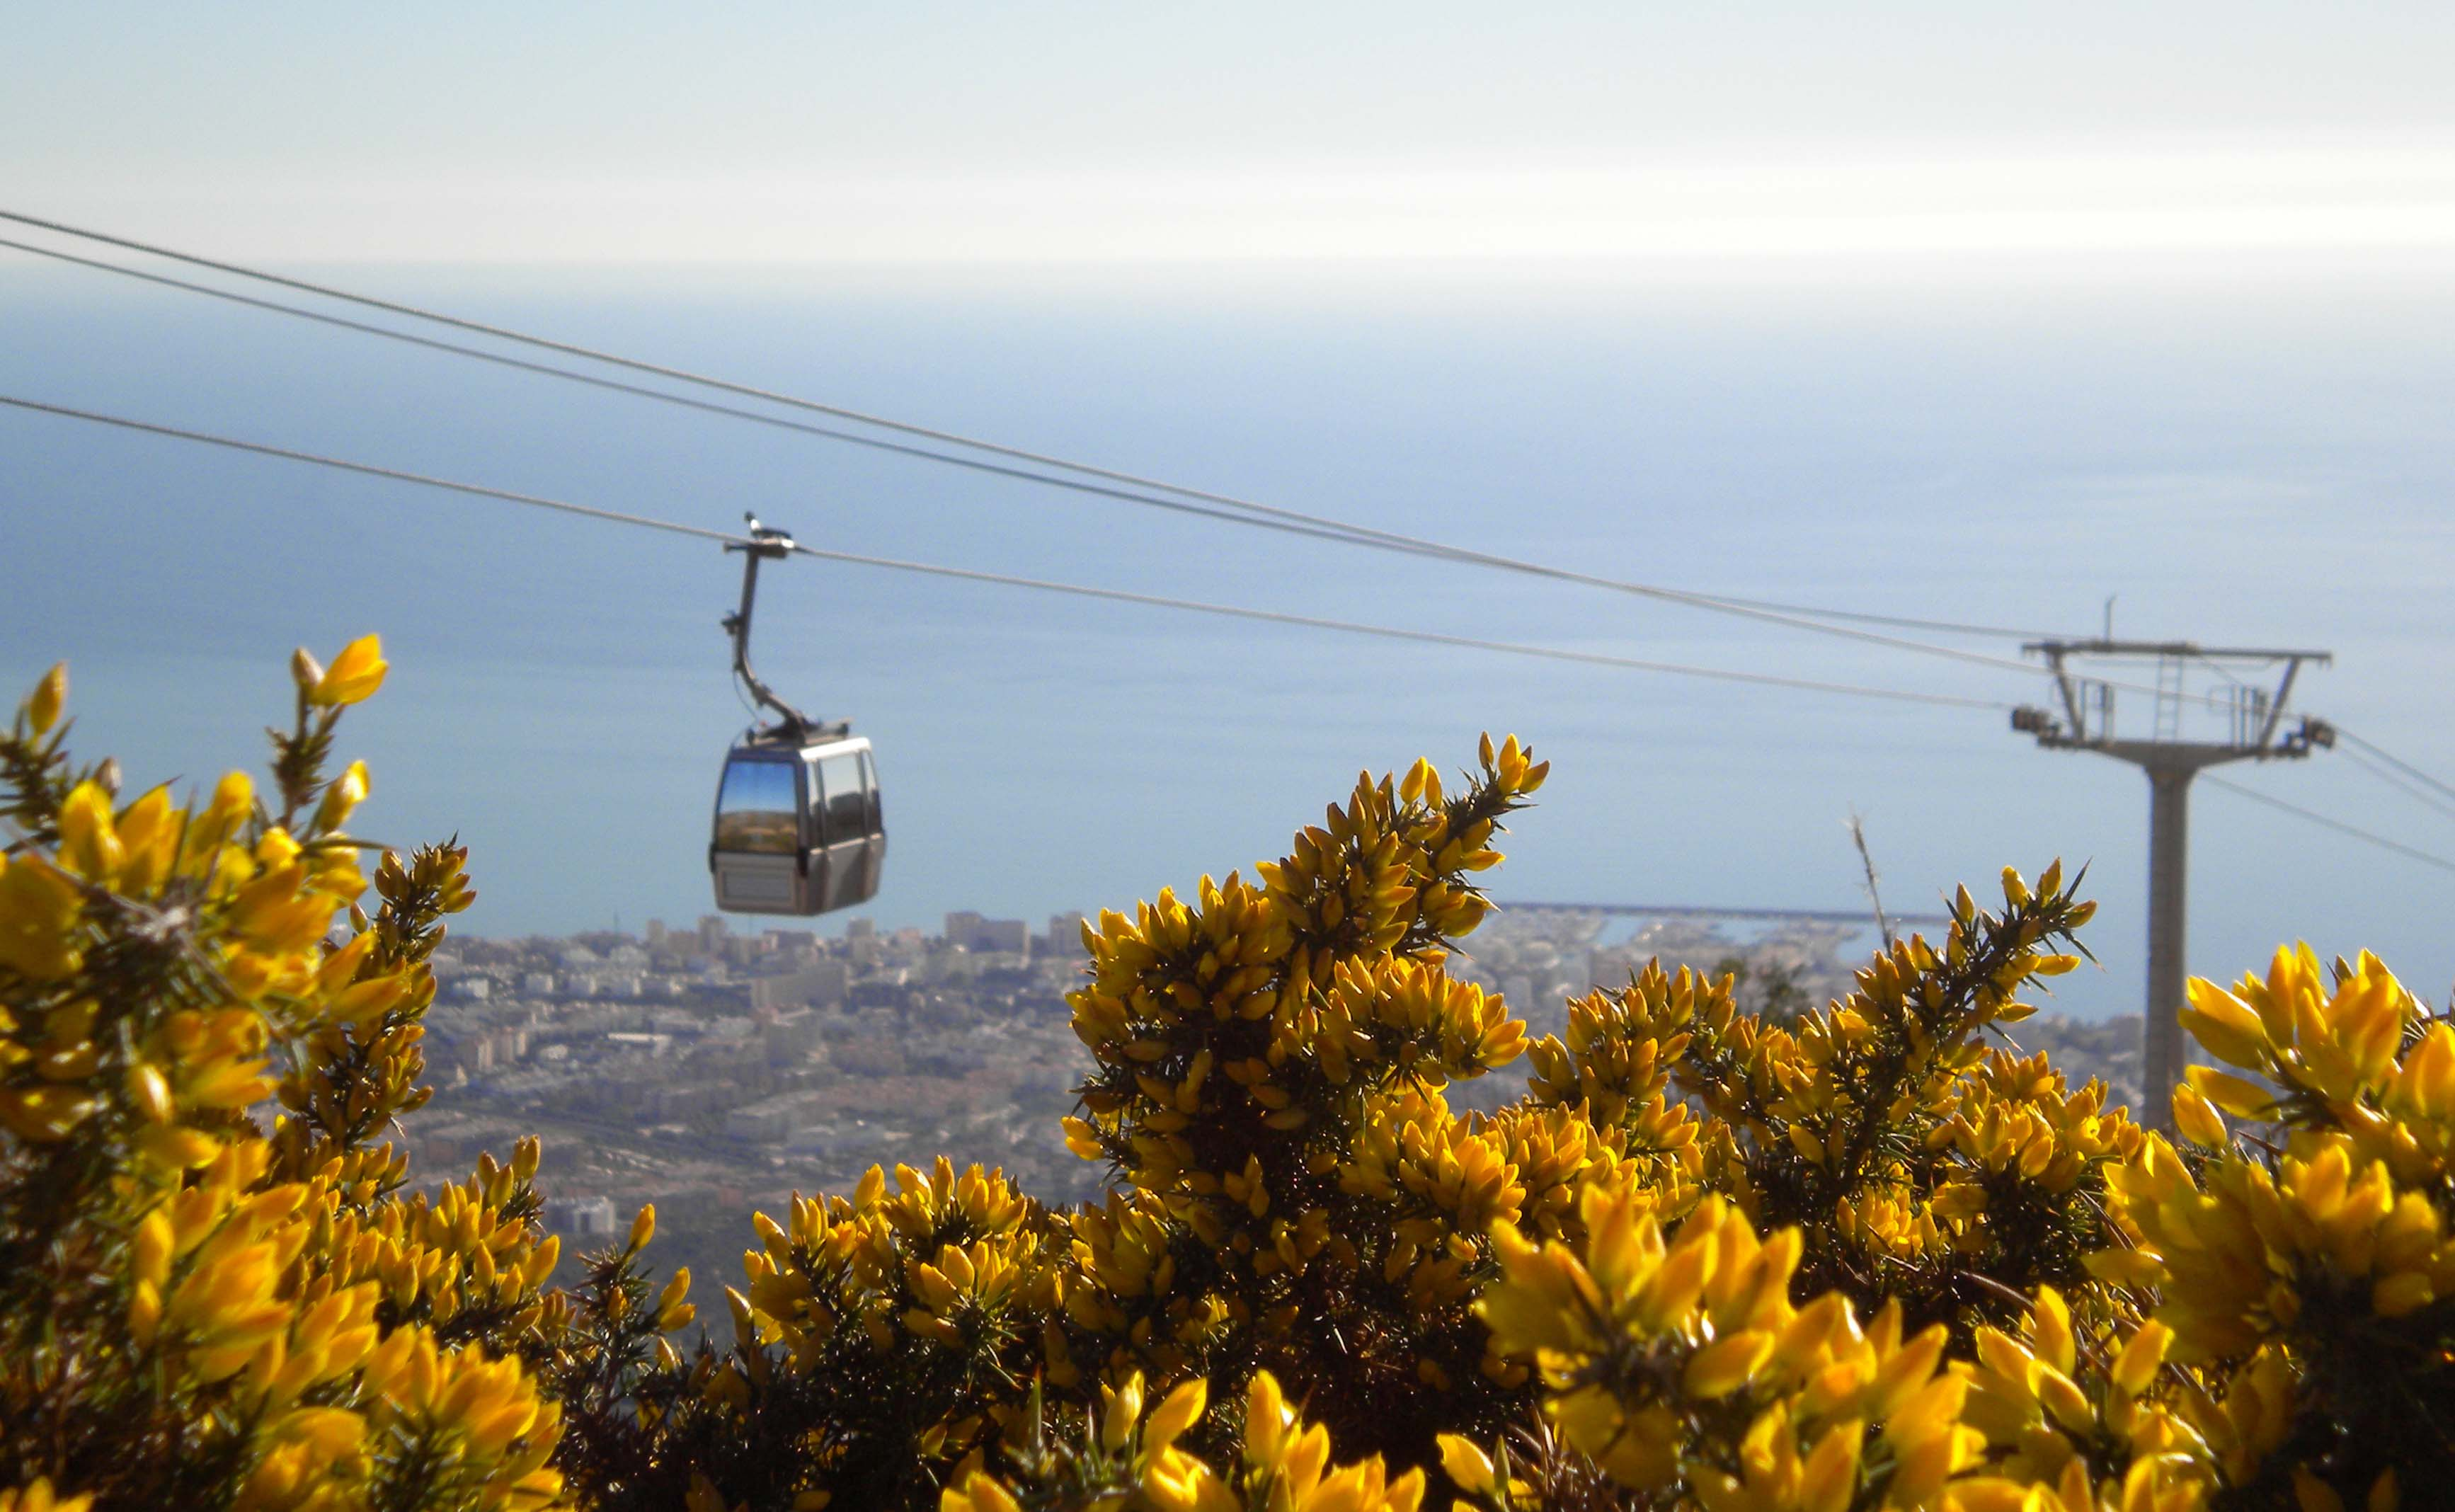 Benalmádena Cable Car offer the most complete leisure offer on the Costa del Sol